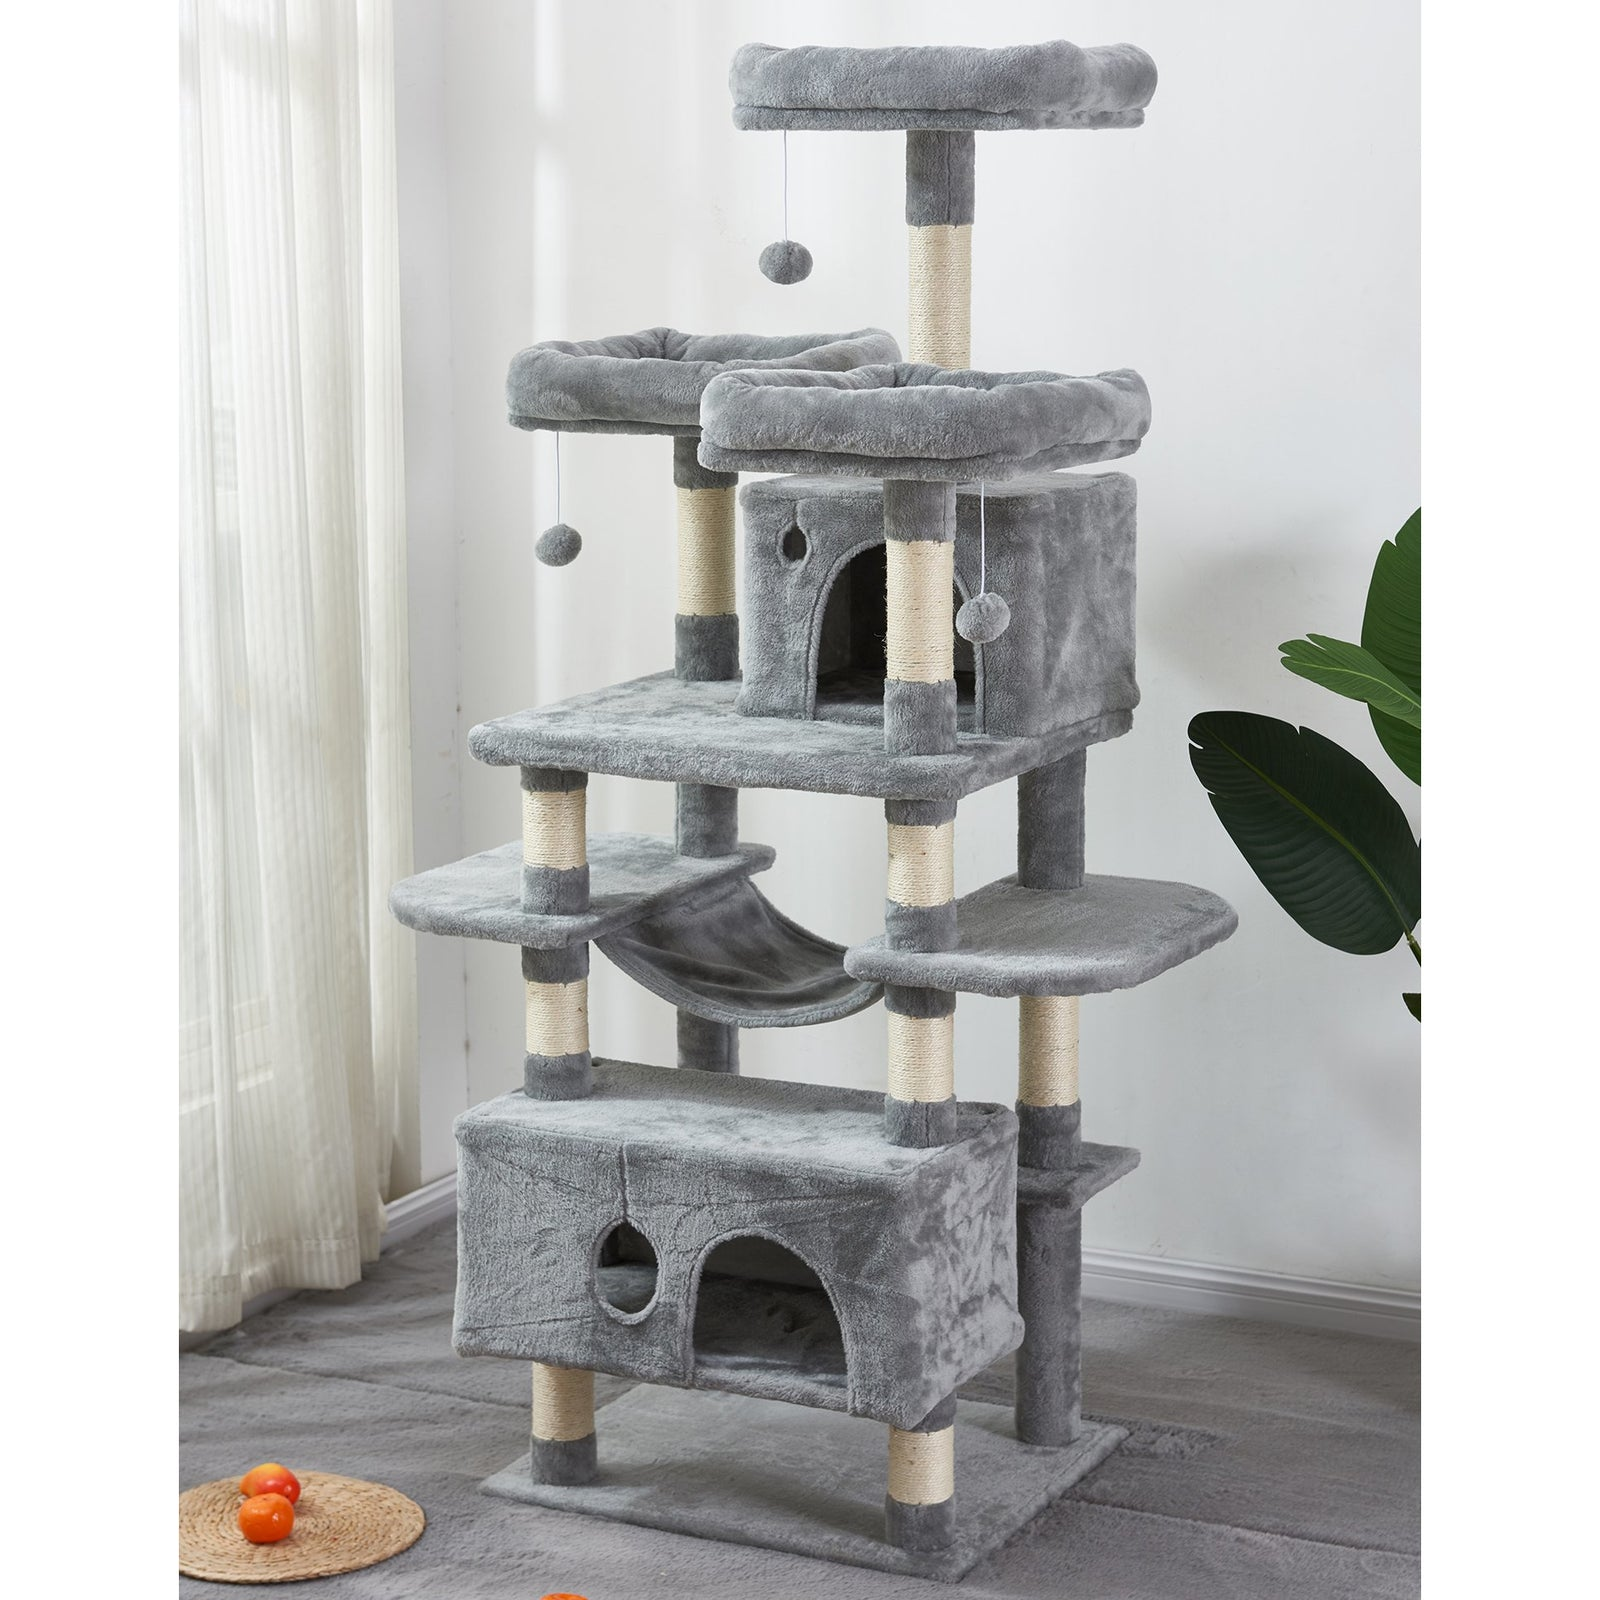 Gray Large Cat Tree Condo with Sisal Scratching Posts Perches Houses Hammock, Cat Tower Furniture Kitty Activity Center Kitten Play House Gray W46918552